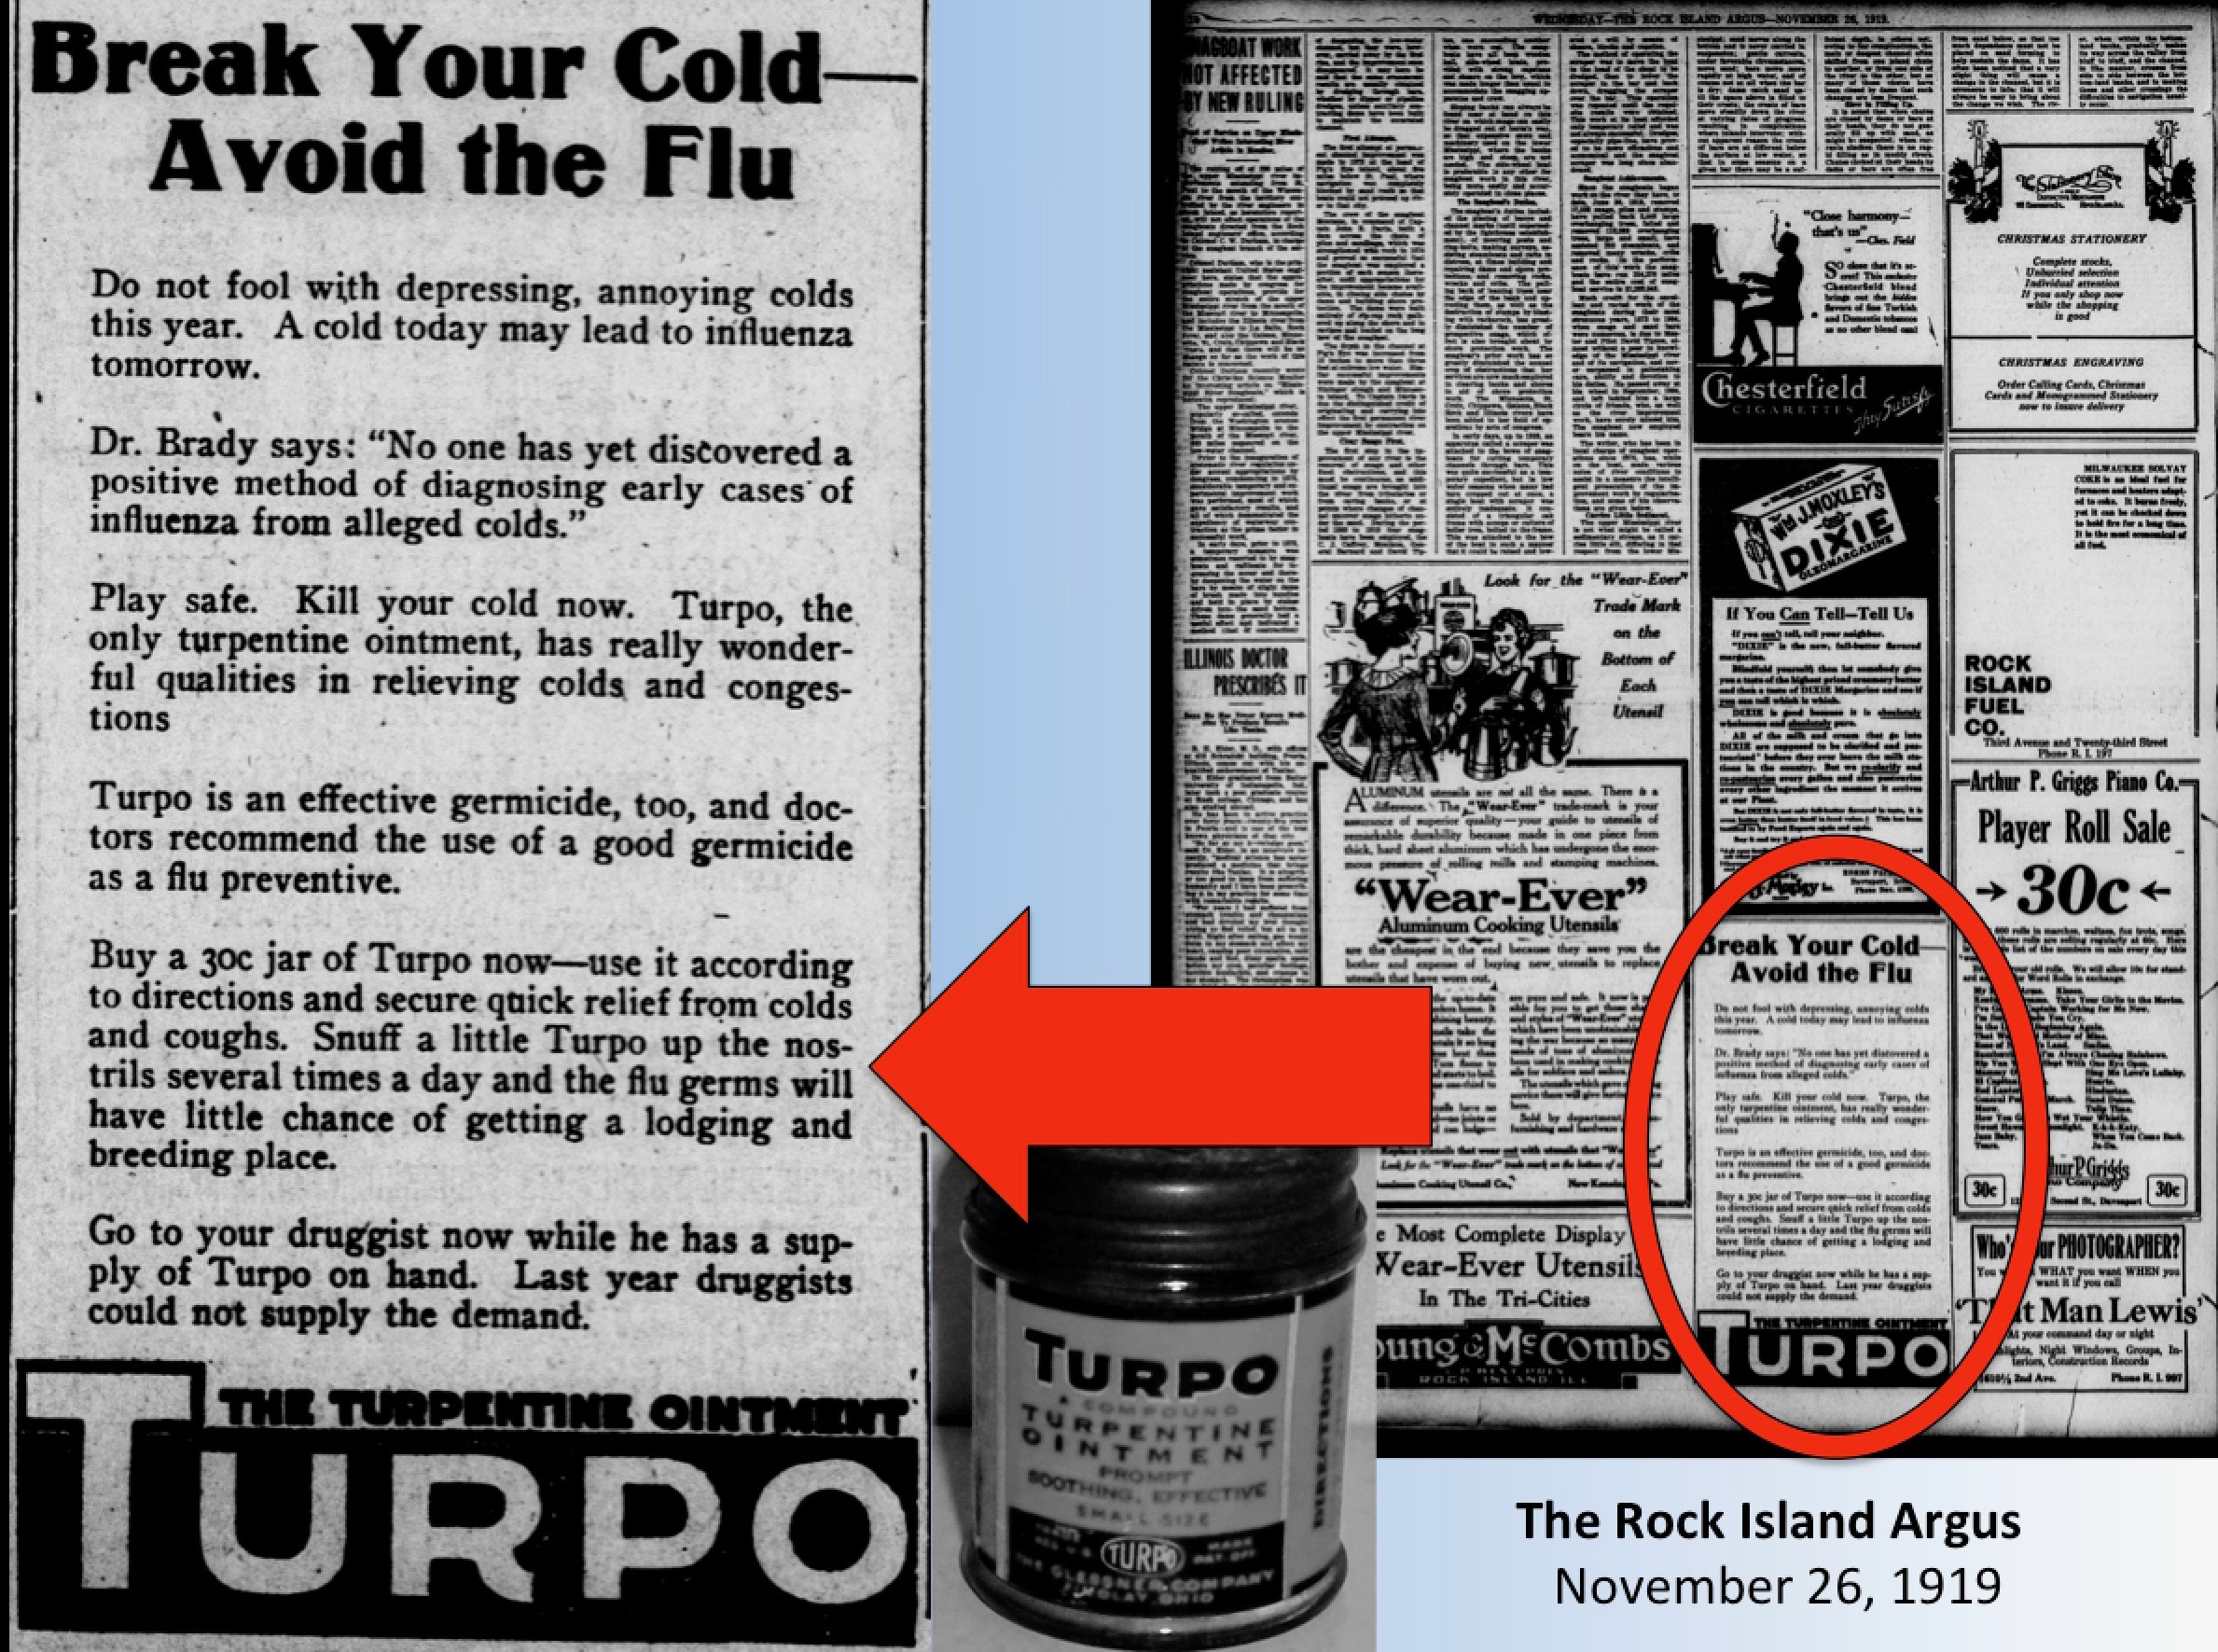 Turpo Ointment